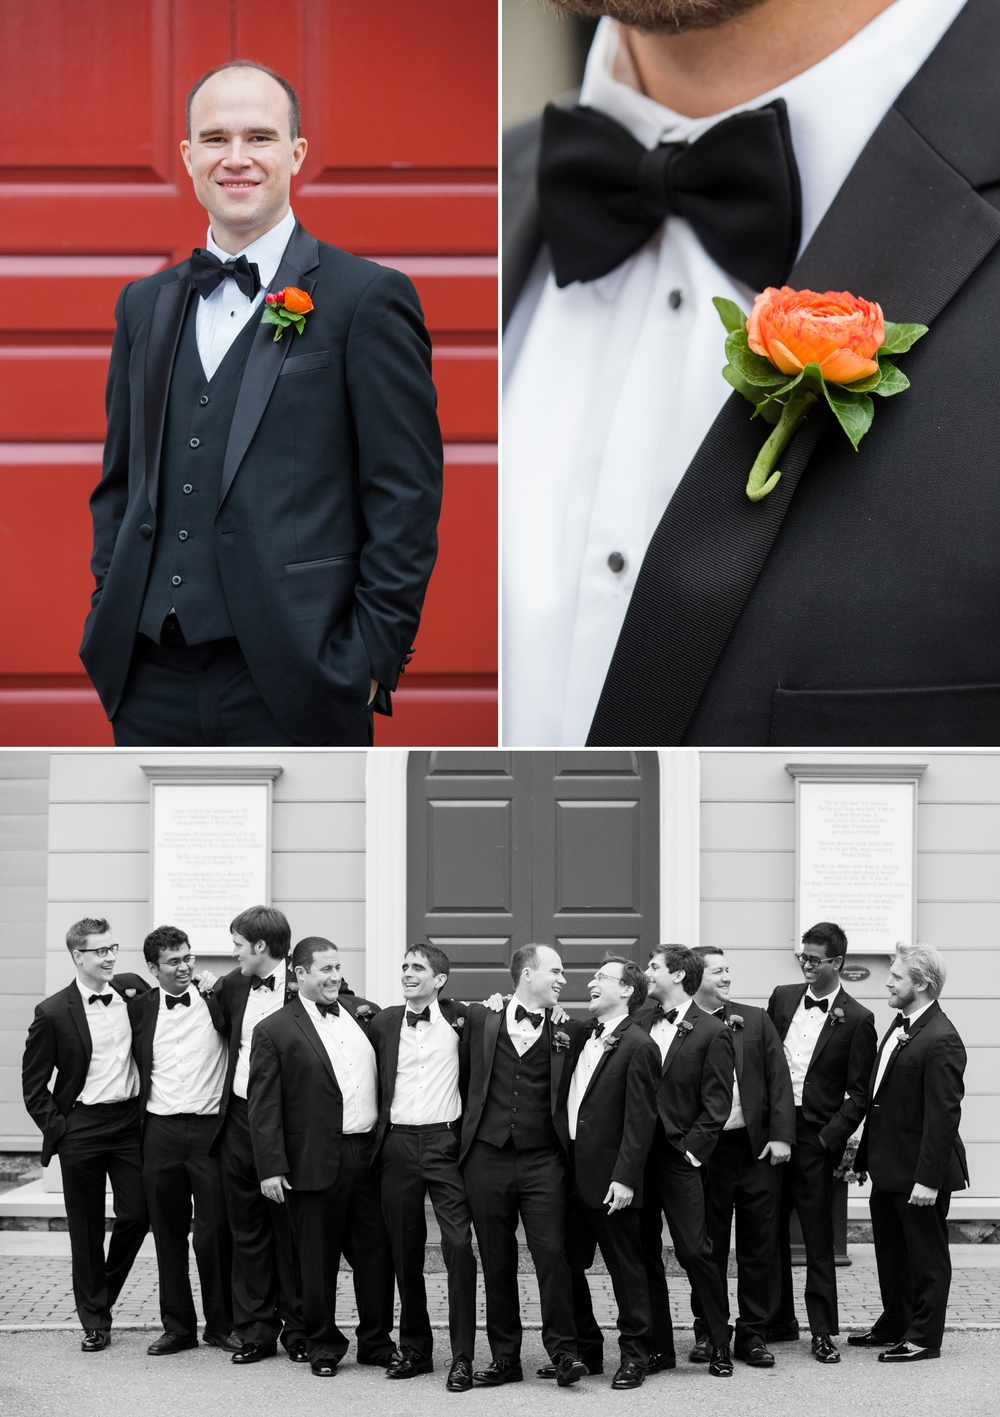 HarvardFacultyClubWedding_BostonMAFallWedding_MichelleGirardPhotography28.jpg